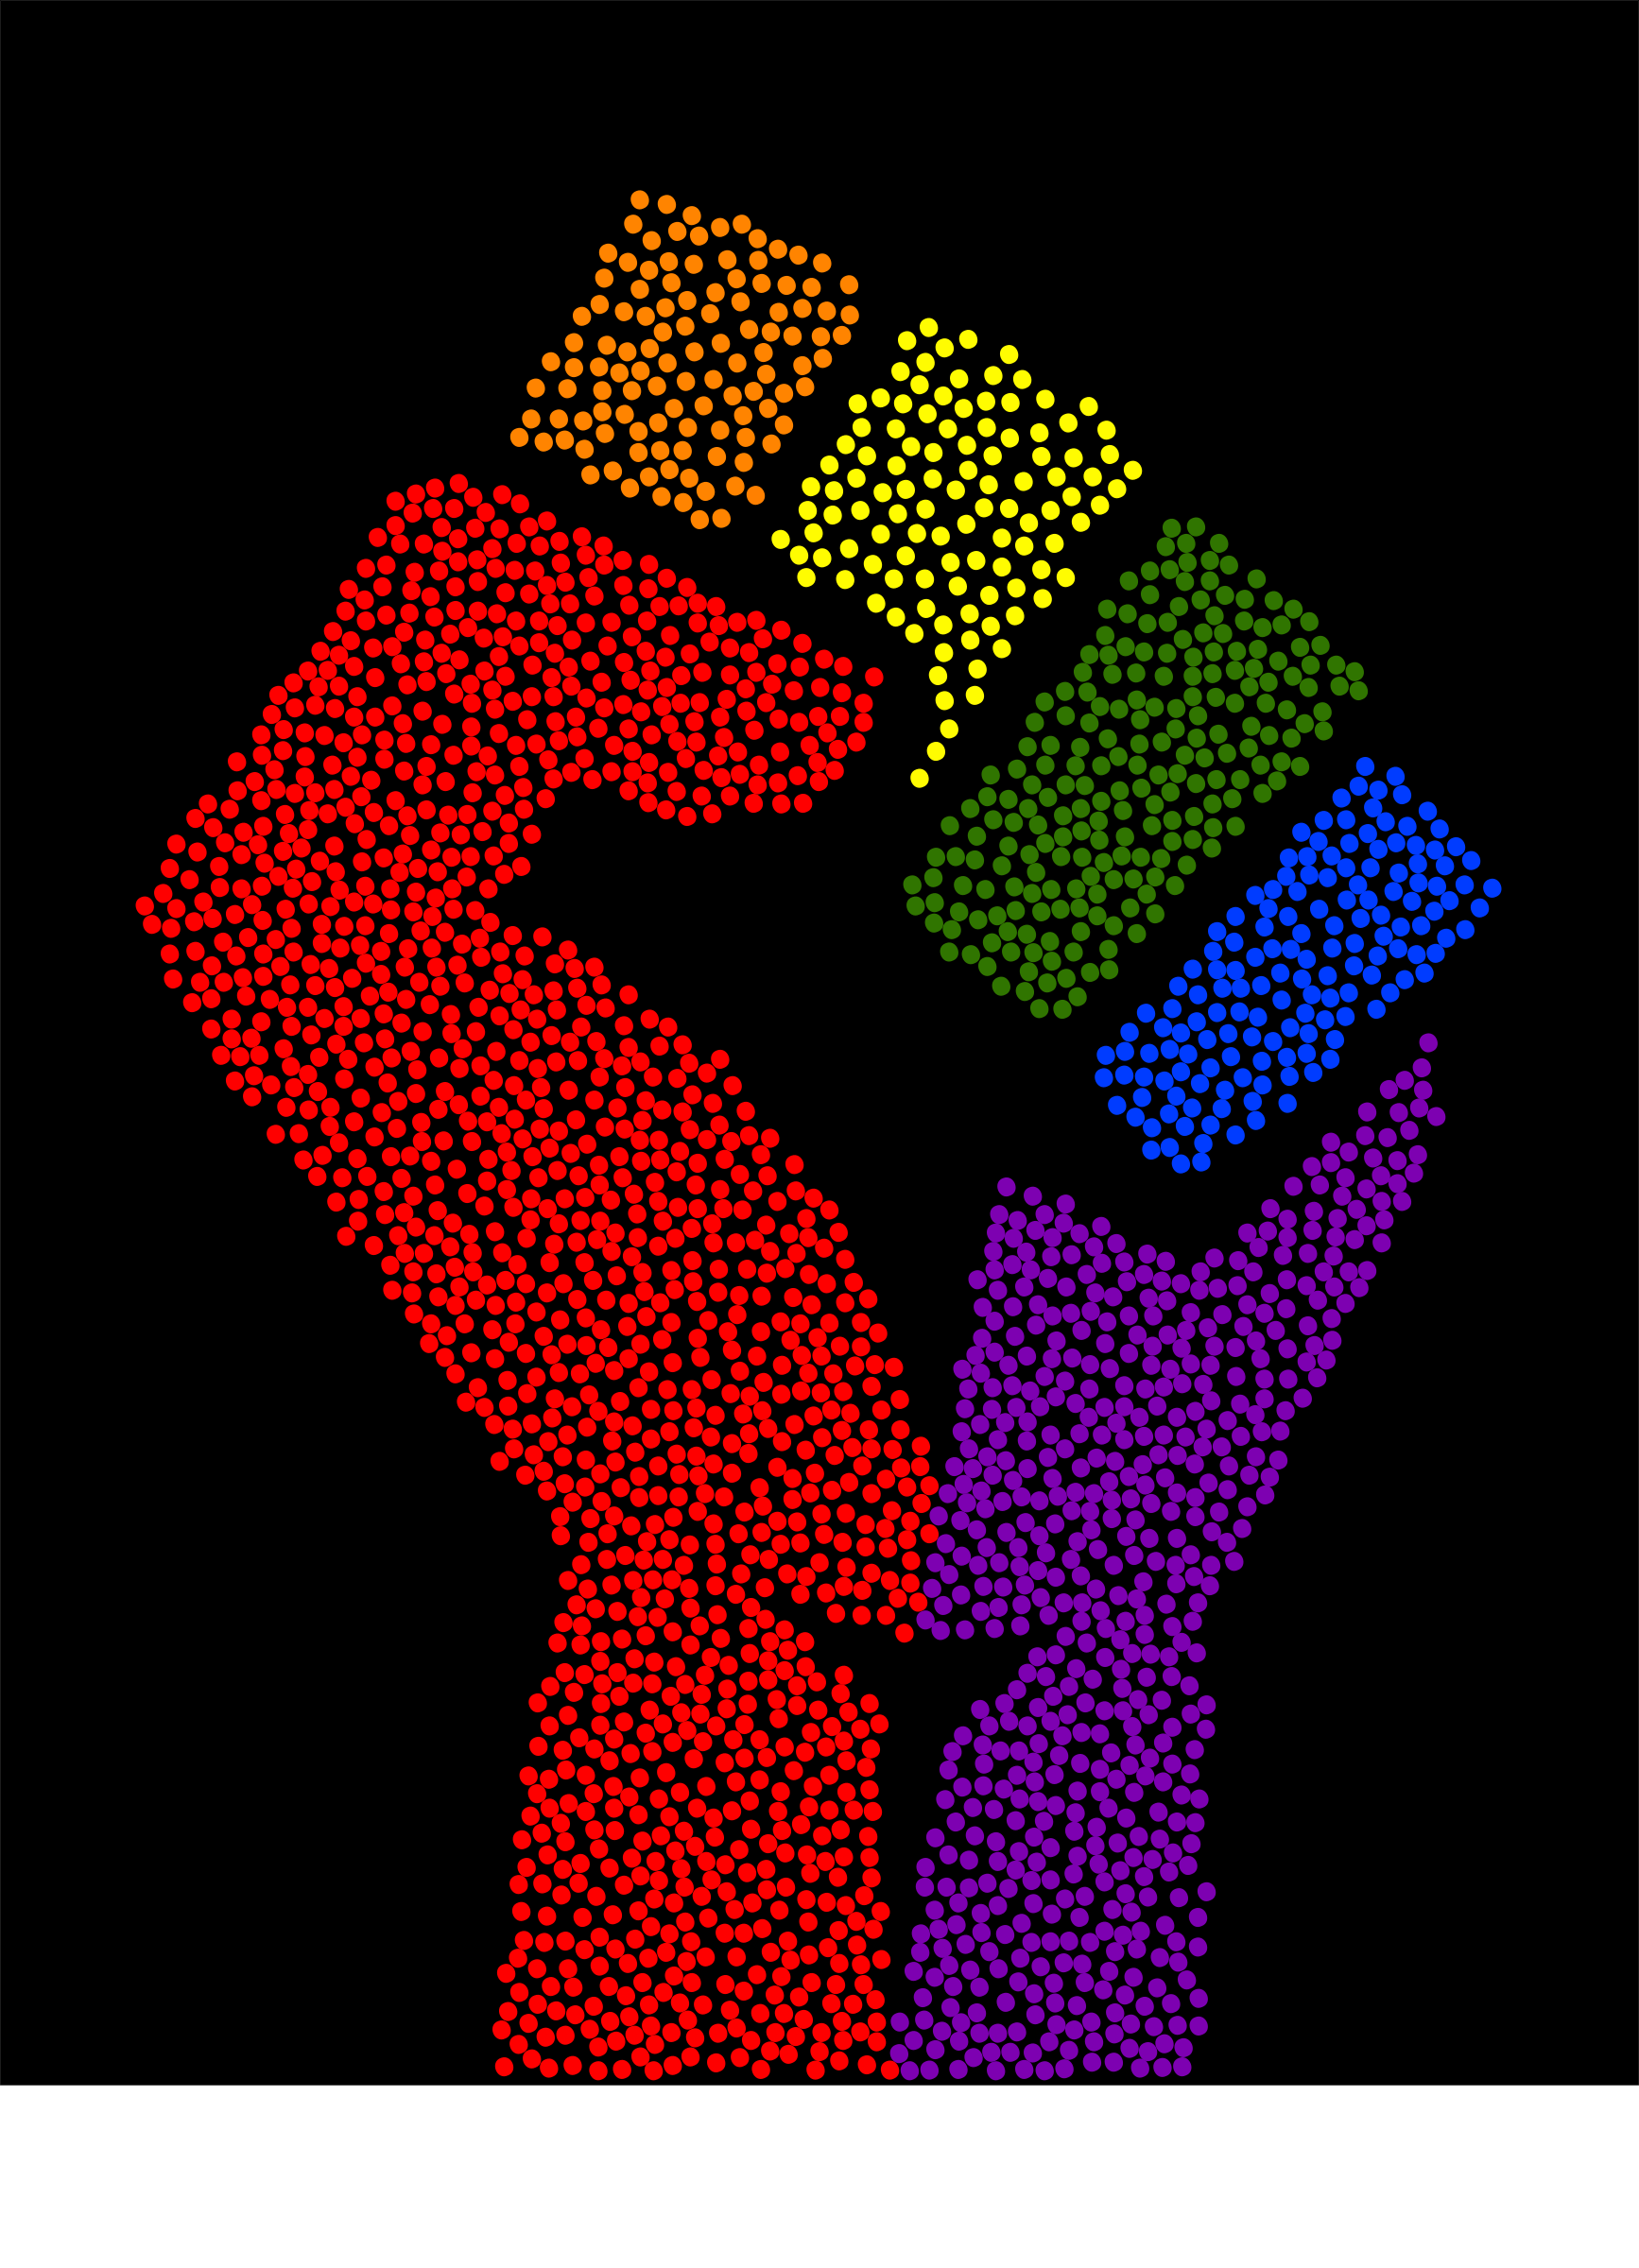 Rainbow fist (stippled, black background) by Firkin